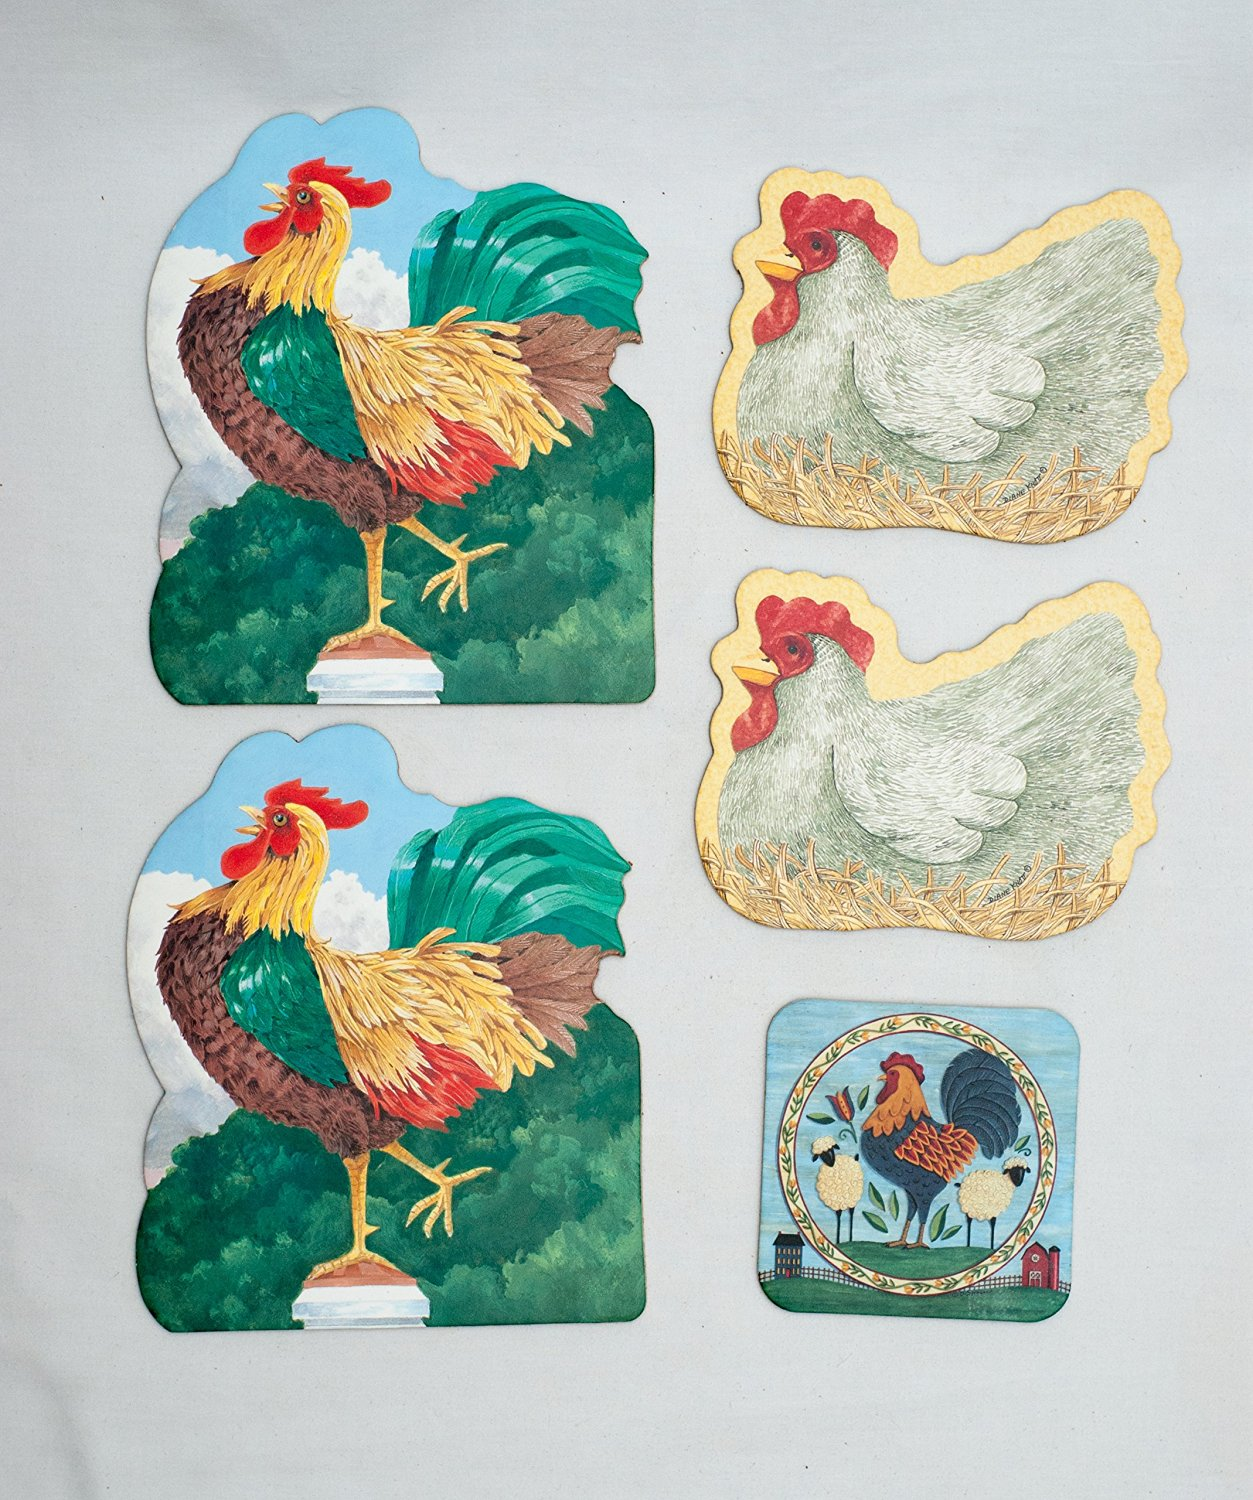 Hen and Rooster Chicken Themed Absorbent Beverage and Pitcher Coasters with Cork Backing (Pack of 5) Beverage Coaster Artwork By Deb Strain and Diane Knott